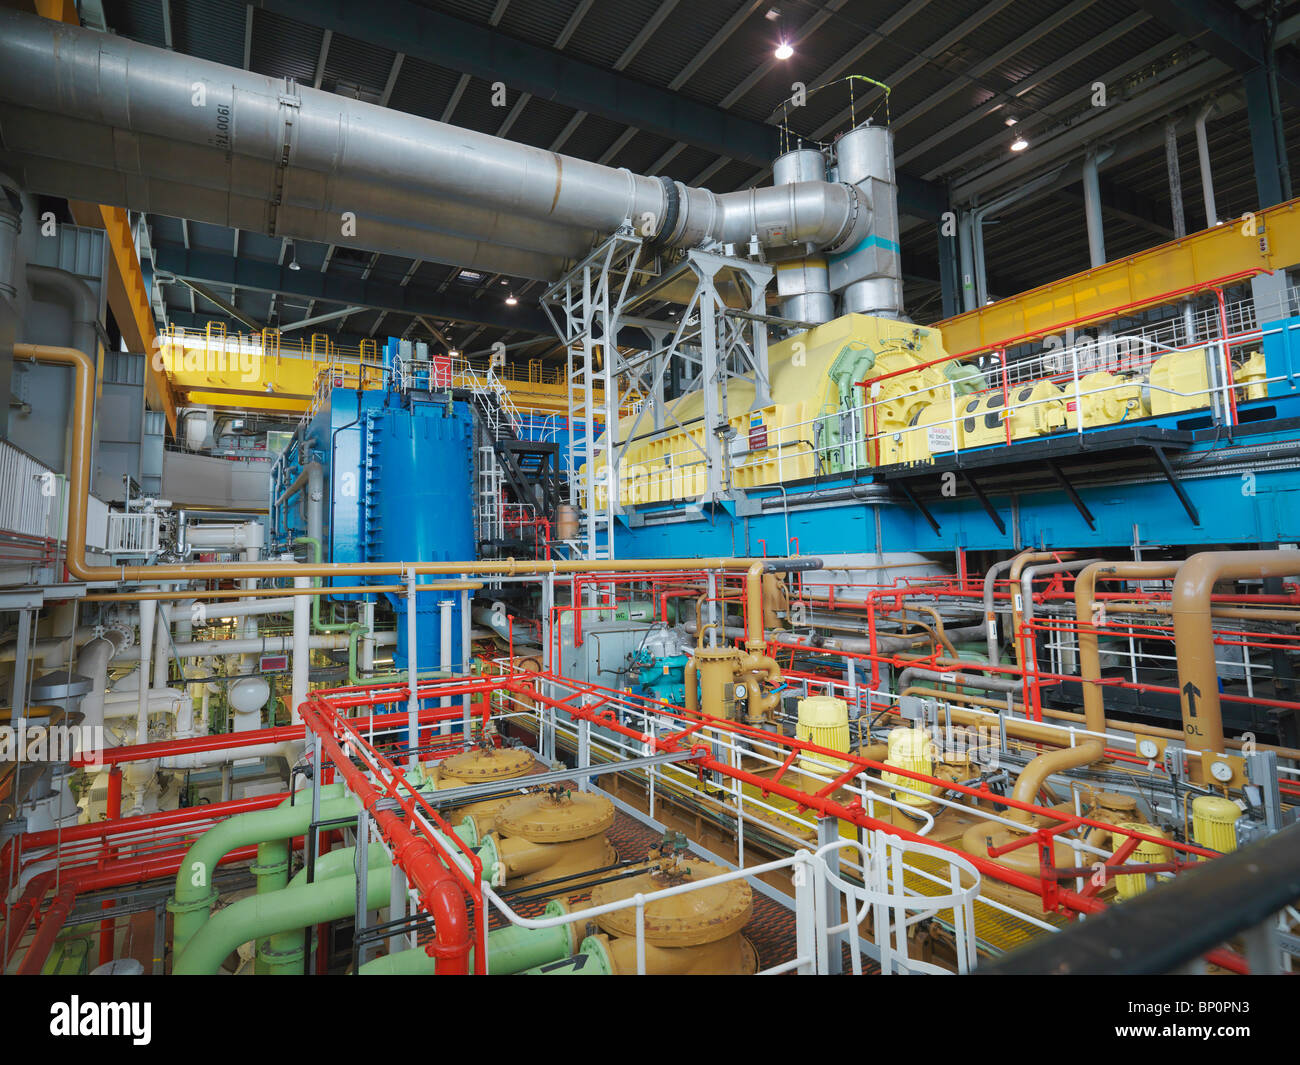 Turbine Hall of Nuclear Power Station - Stock Image